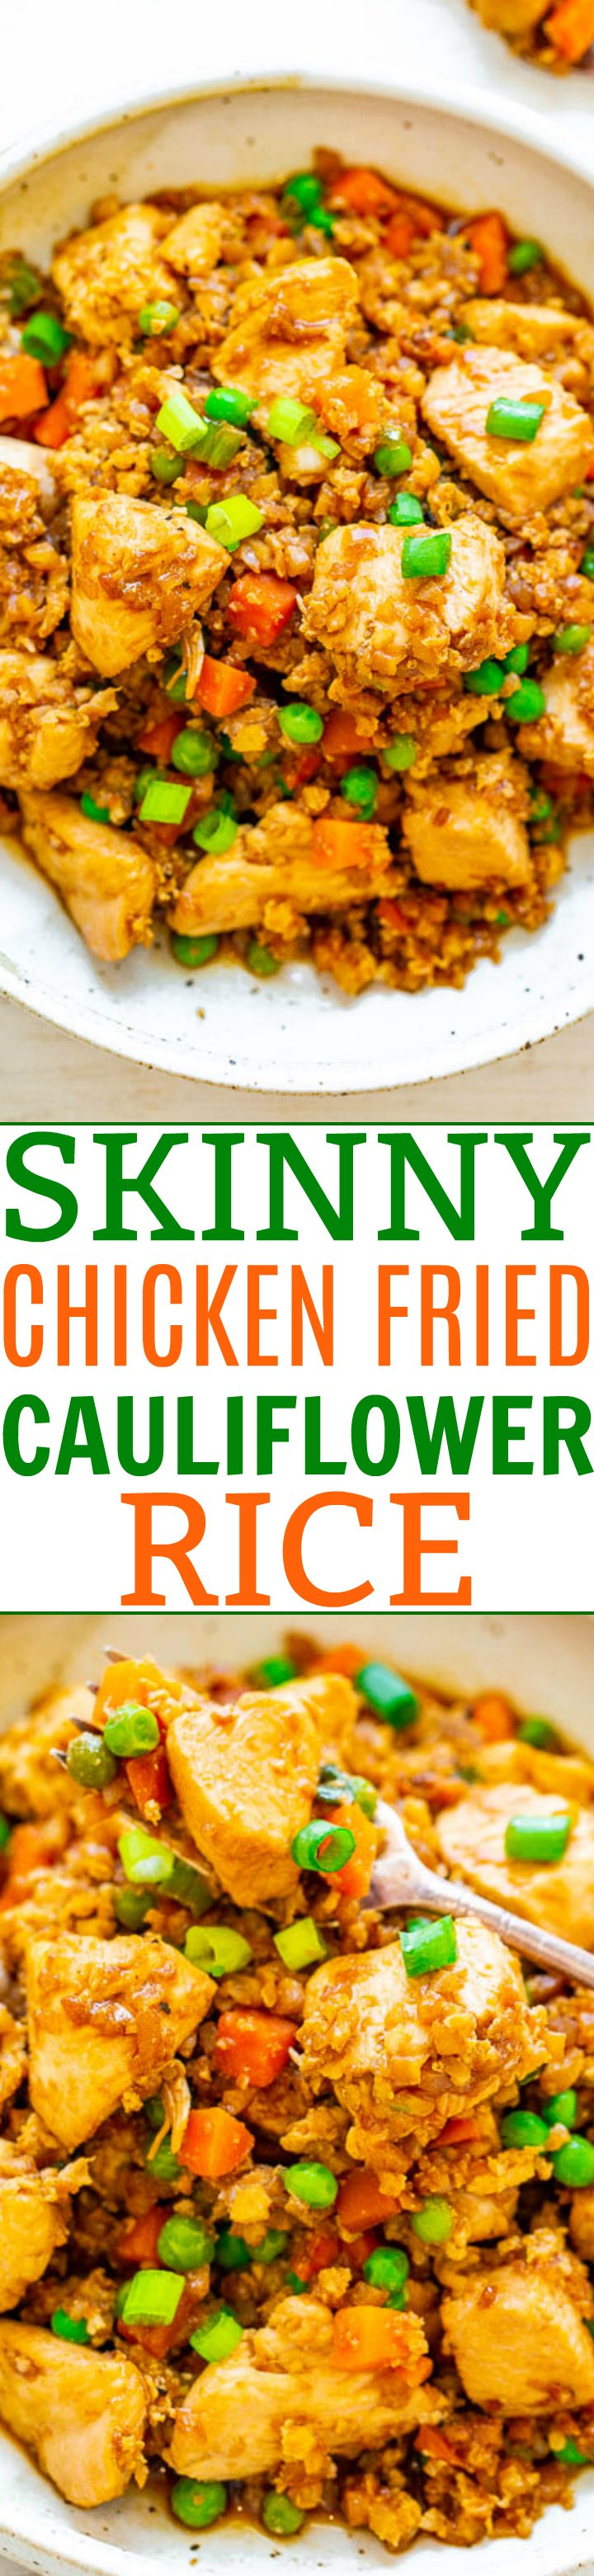 Skinny Chicken Fried Cauliflower Rice - Even people who don't like cauliflower will be amazed at how authentic and DELICIOUS this SKINNY version of chicken fried rice tastes!! Easy, ready in 15 minutes, and so much HEALTHIER than calling for takeout!!